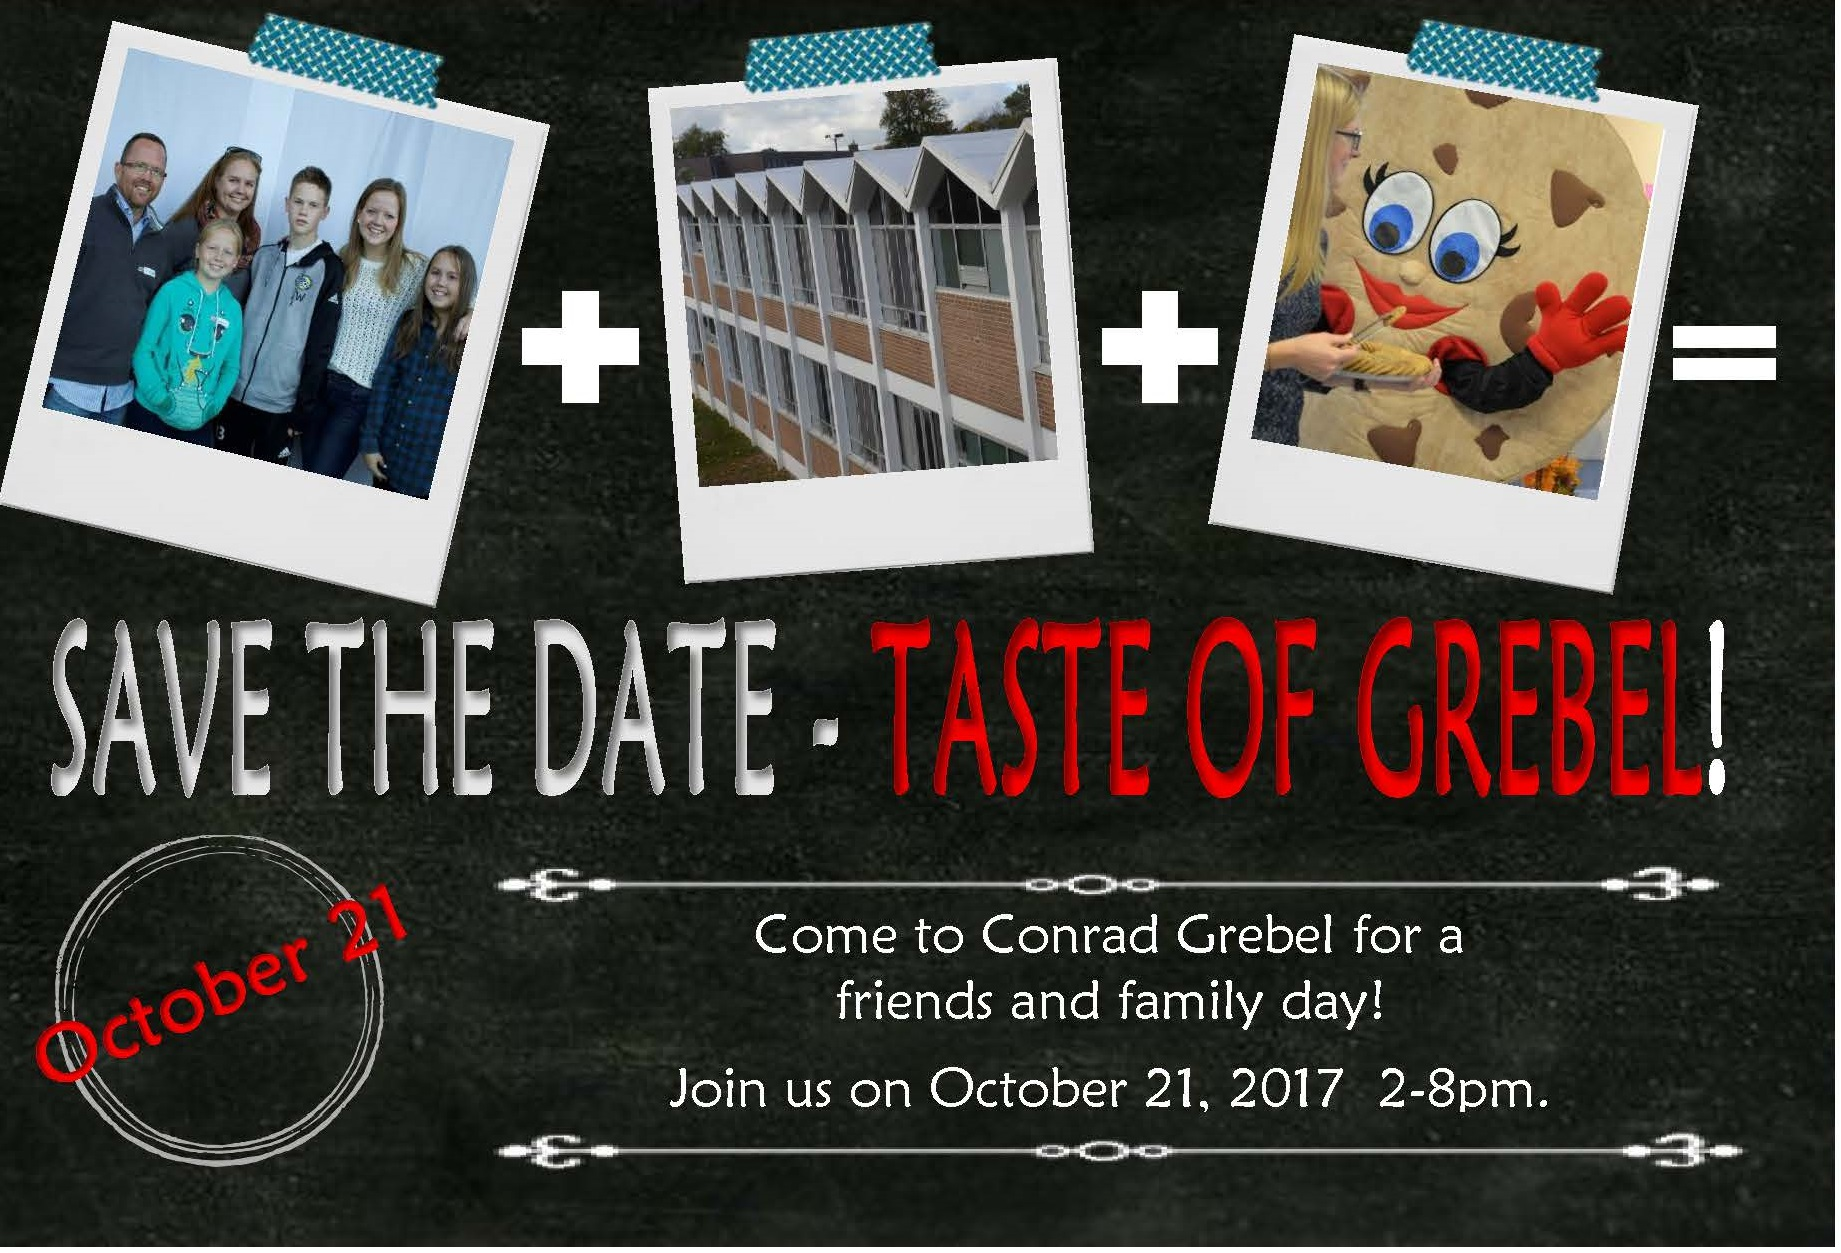 Taste of Grebel invitation